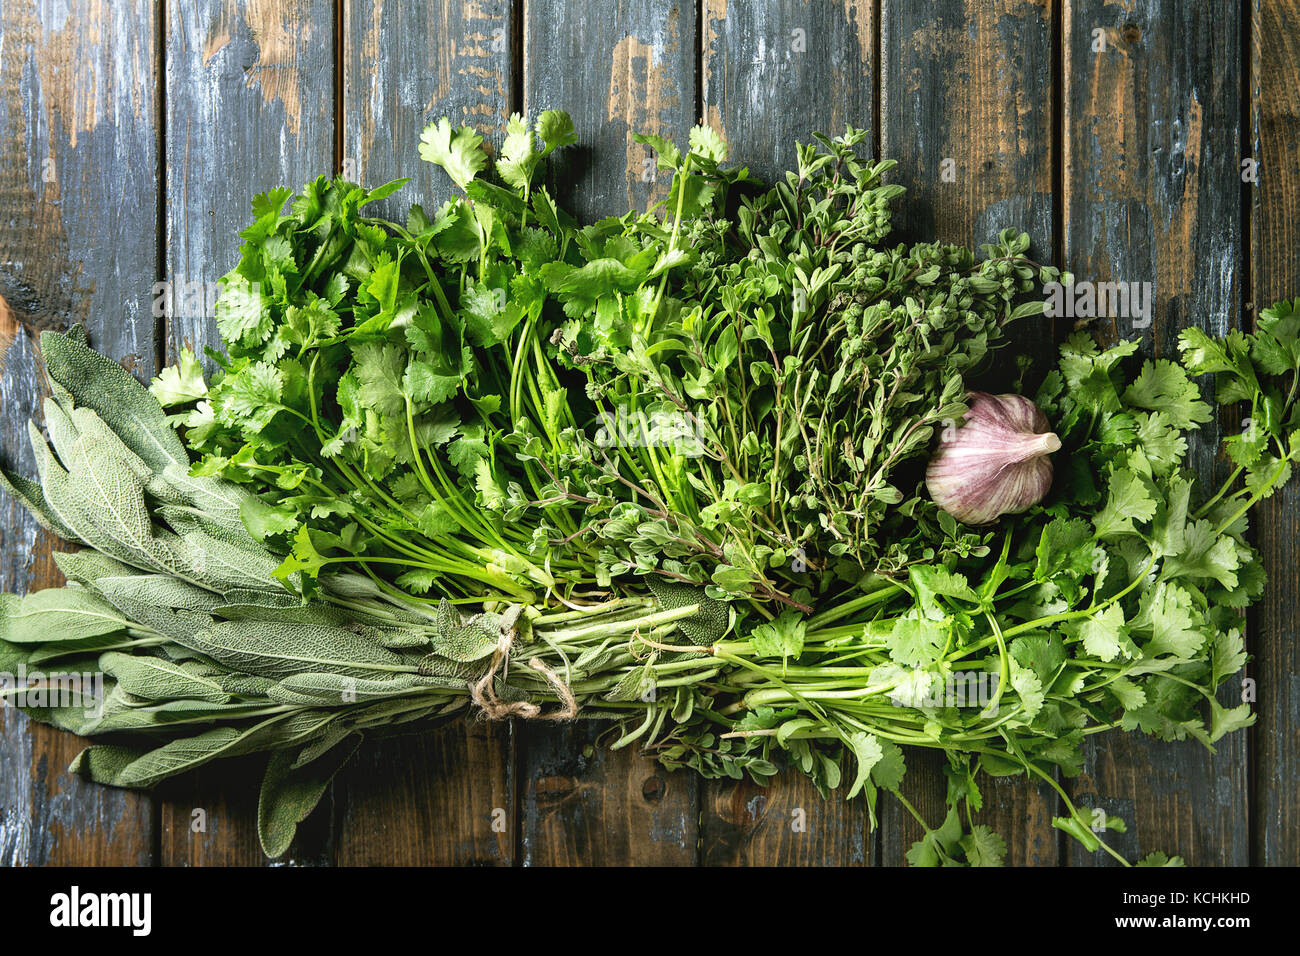 Variety of herbs - Stock Image